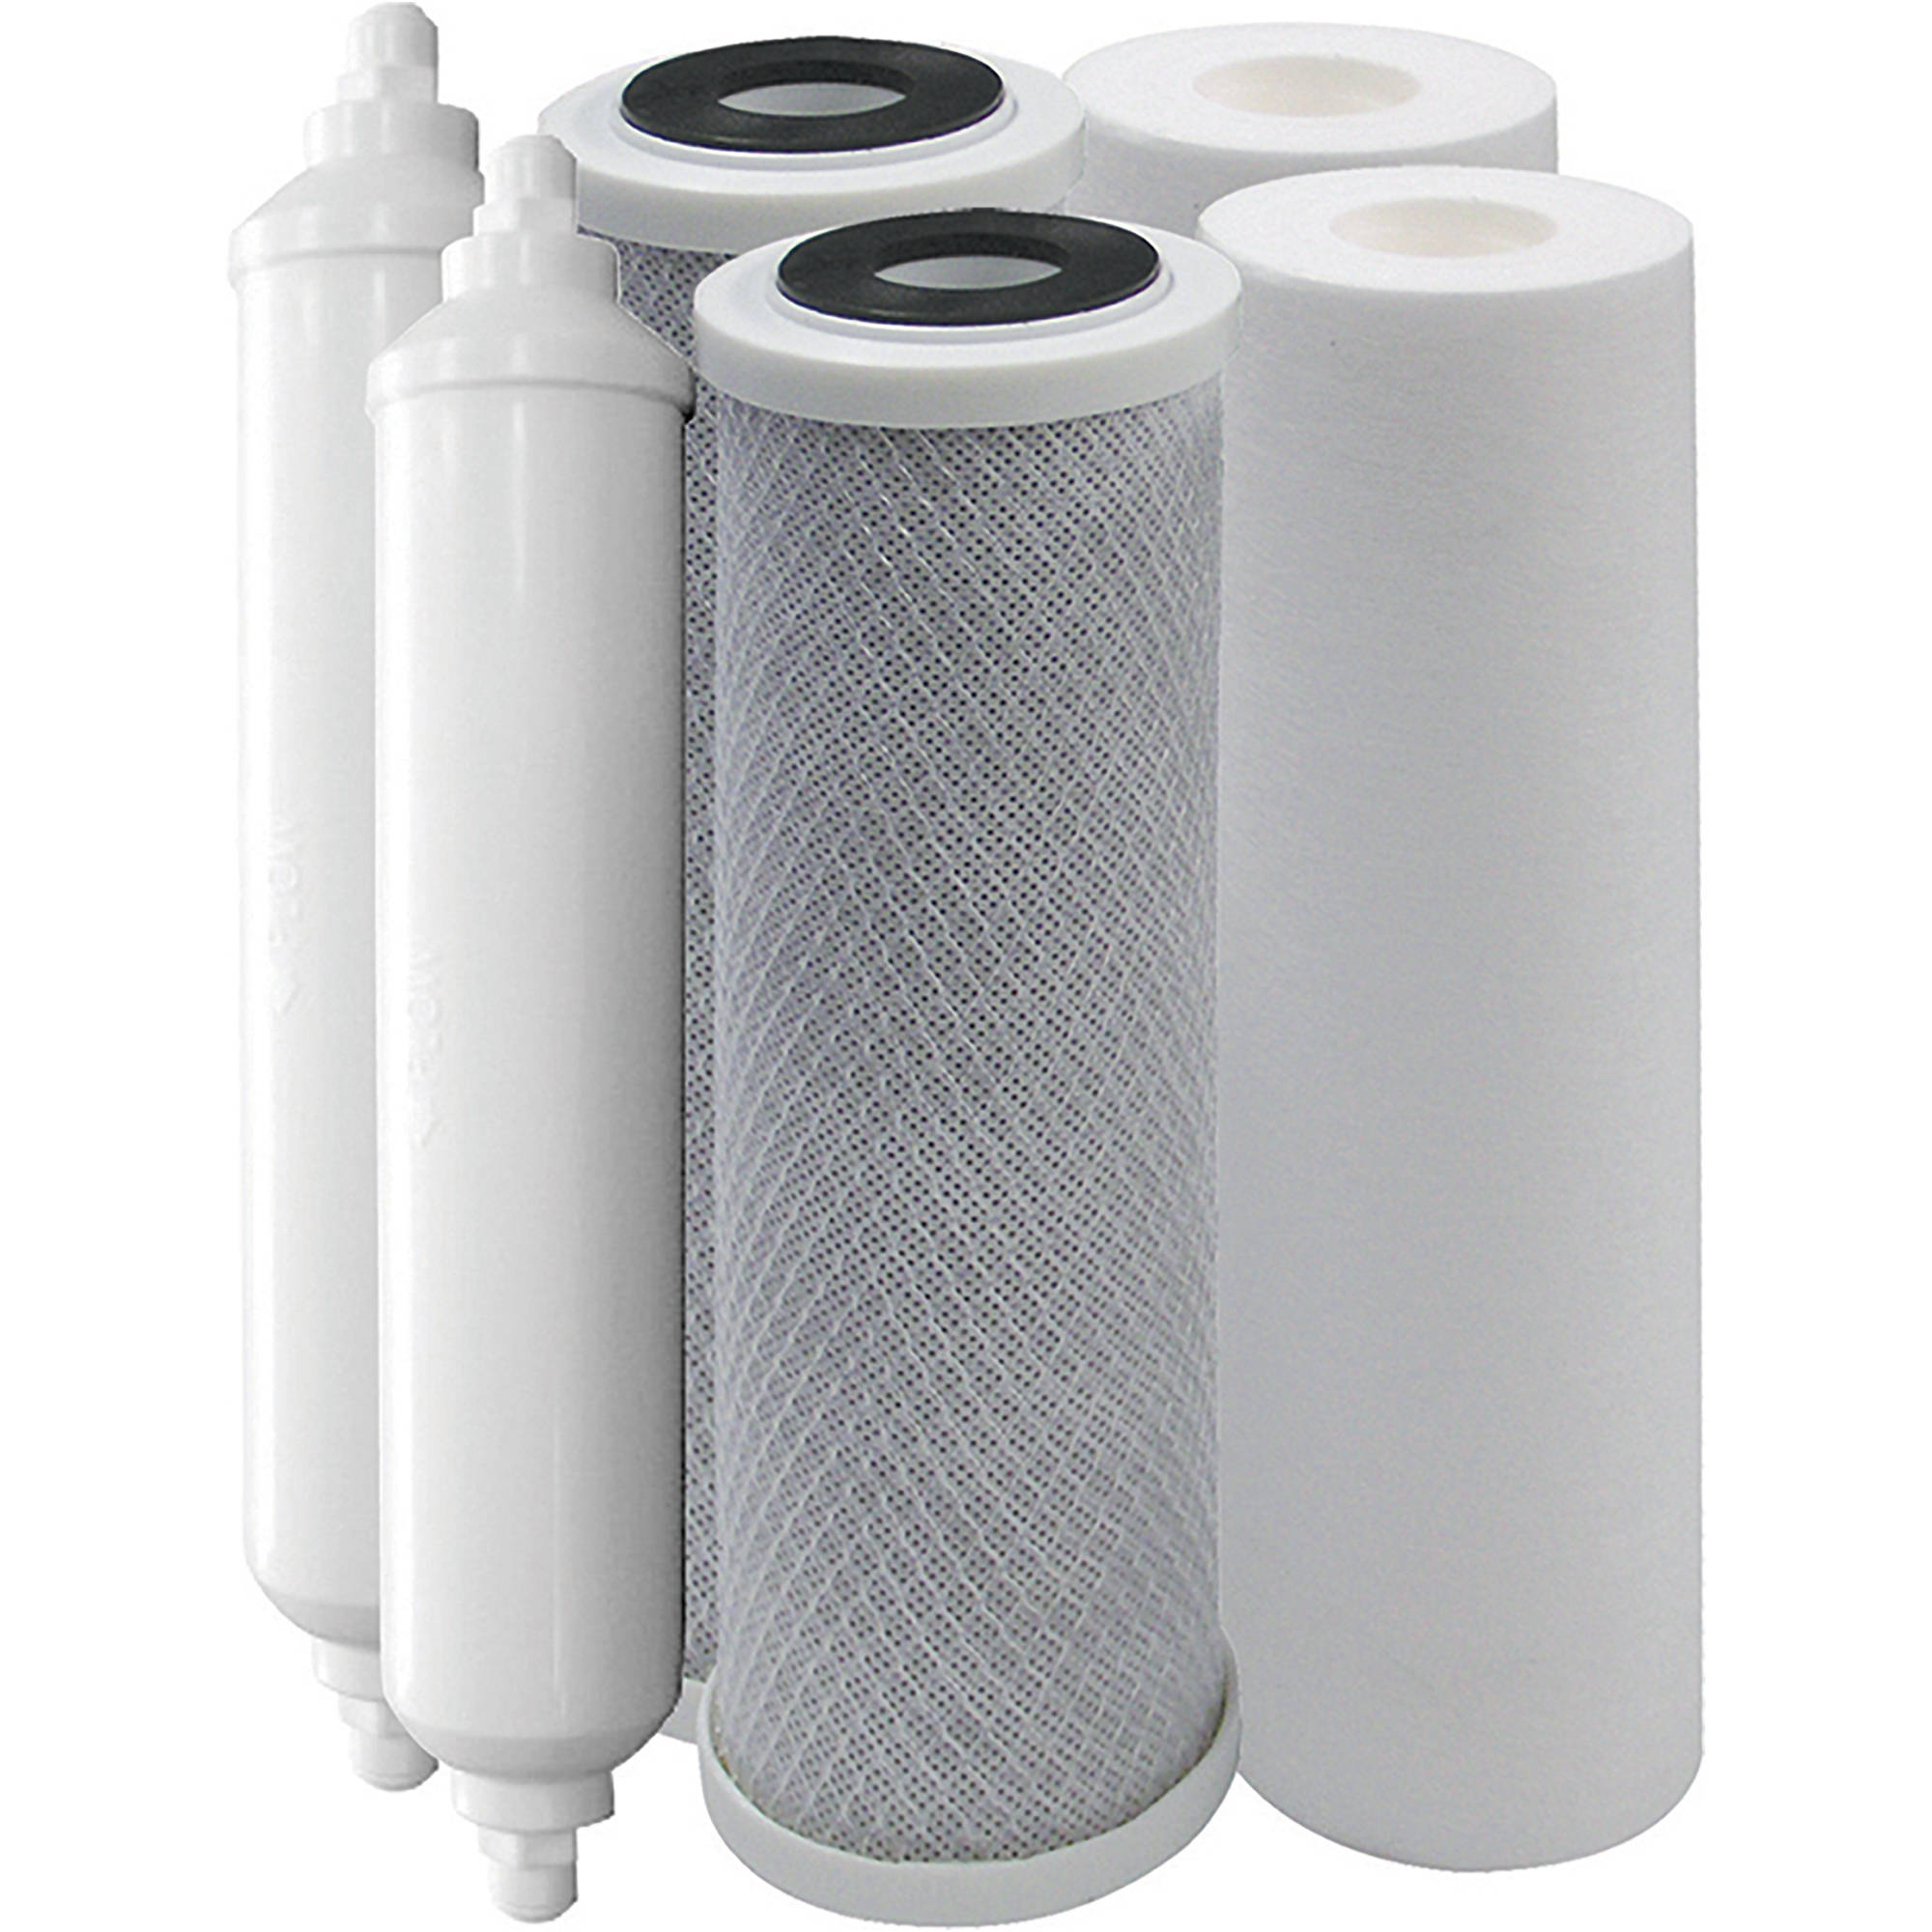 Vitapur Vs10Rfpcil-Kit 1 Year Replacement Filters Kit 4-Stage Ro System